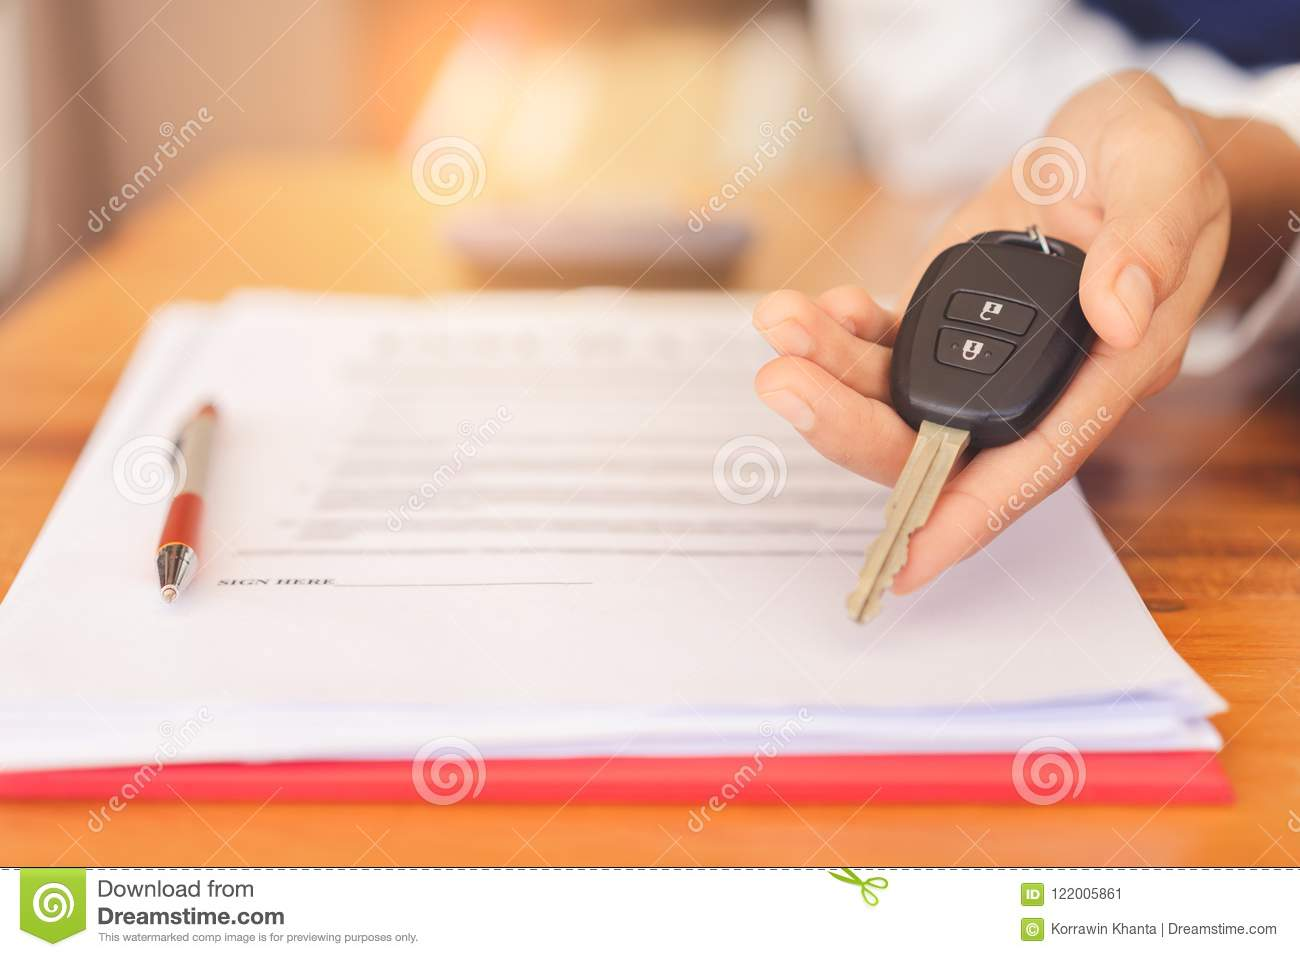 Woman hands giving a car remote key after signed contract agreement and successful deal.